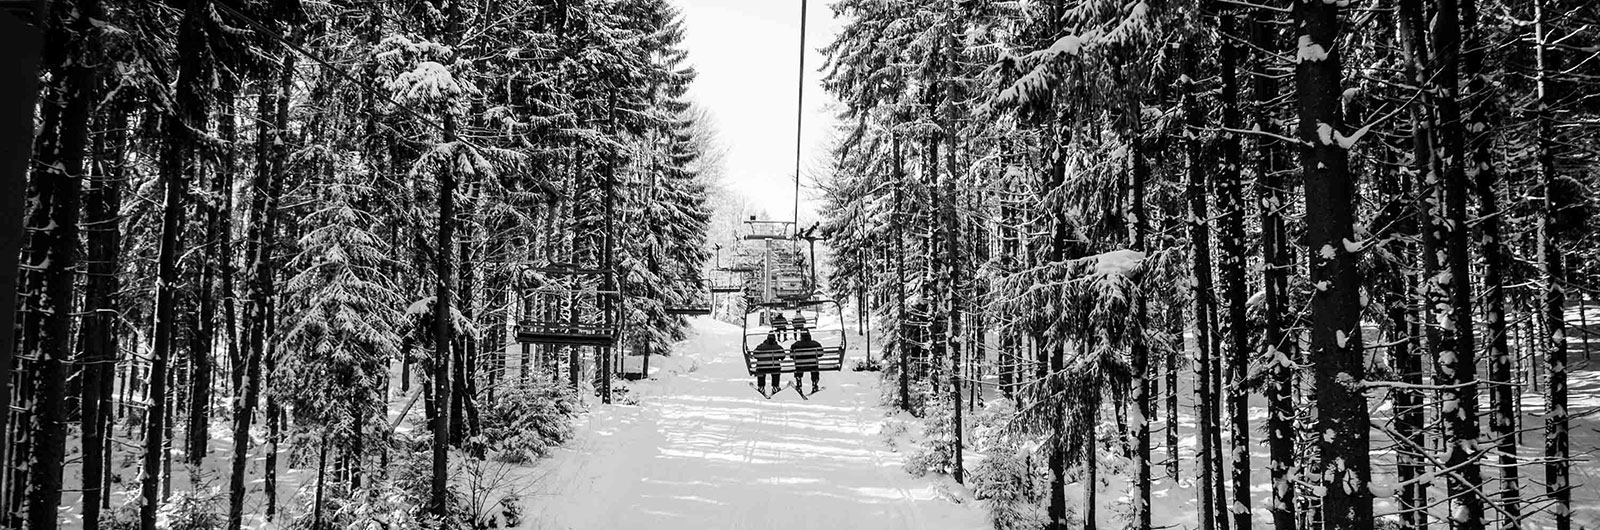 riding Tannenbaum chairlift between snowy trees